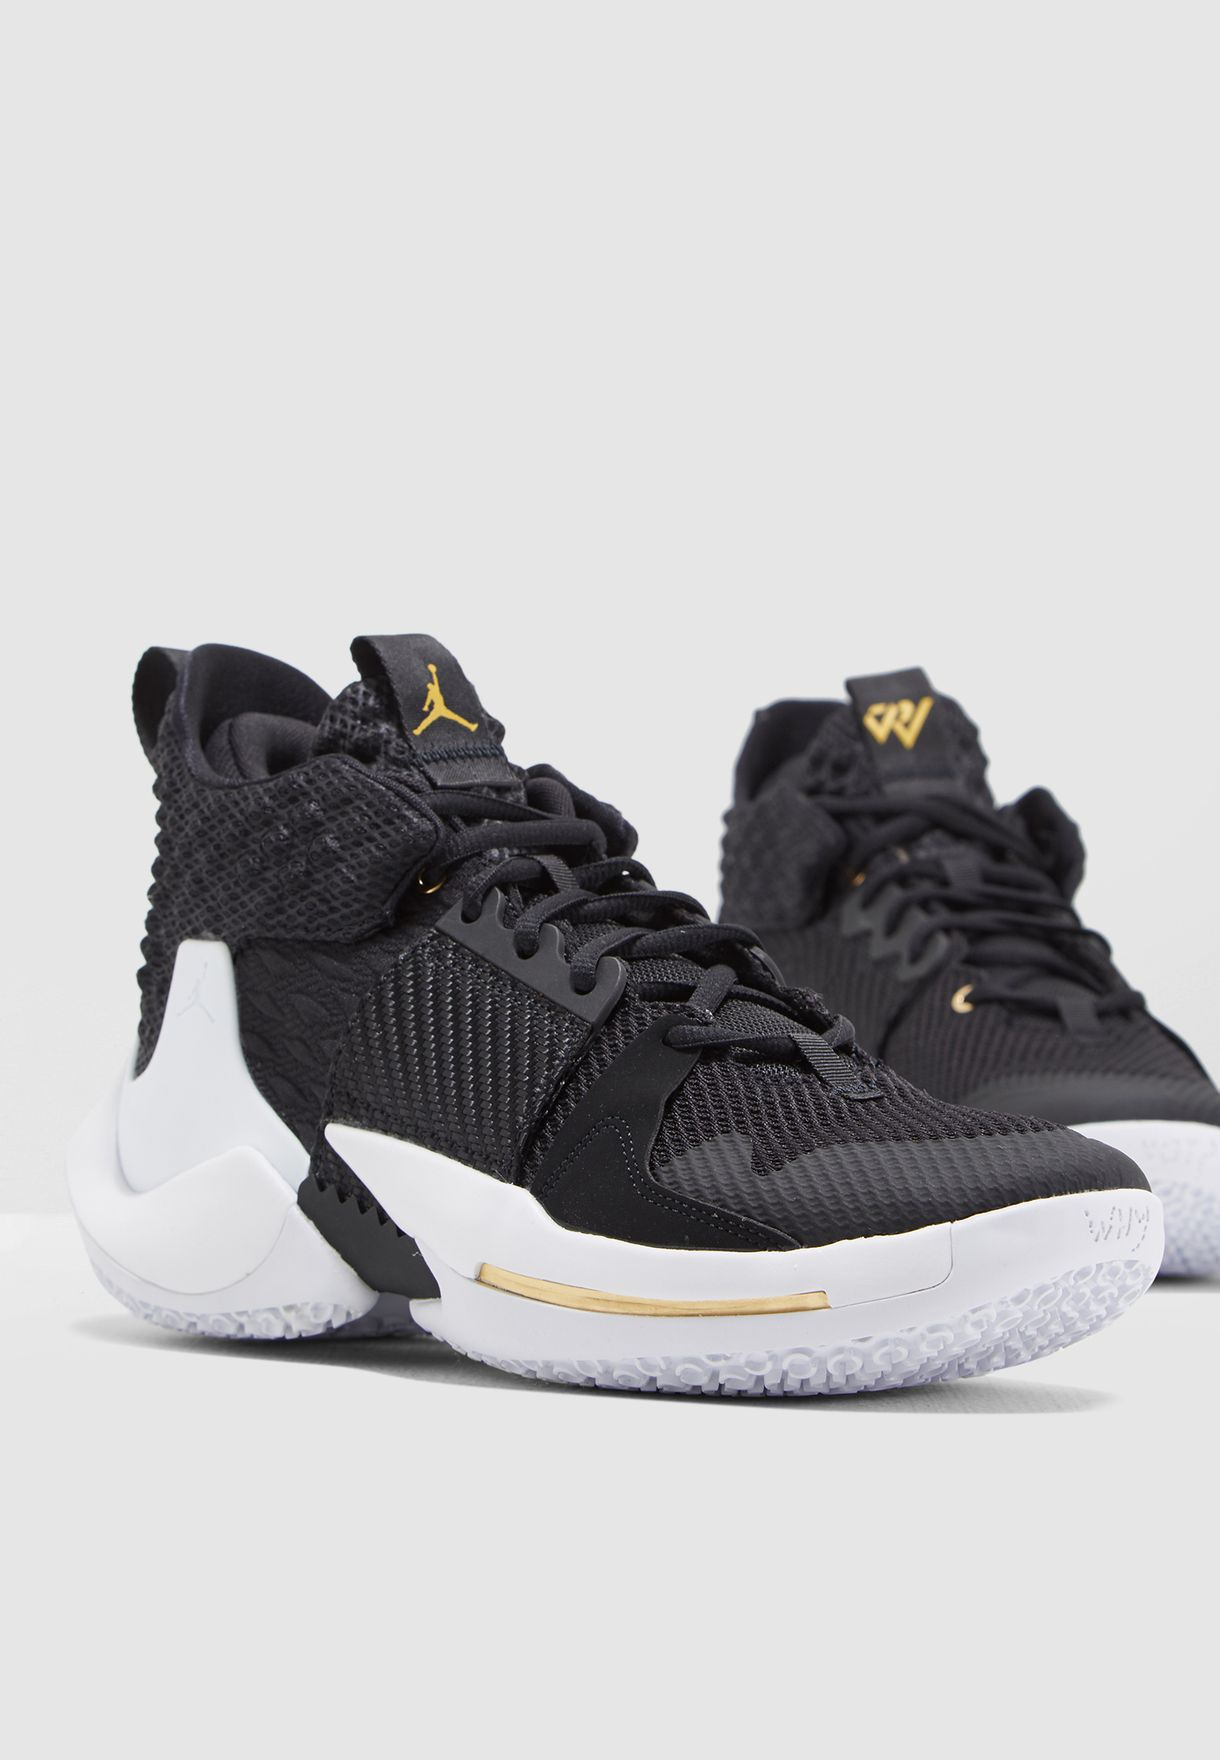 the latest b20ed 3b58e Shop Nike black Jordan Why Not Zero.2 AO6219-001 for Men in UAE -  72704SH79ENP